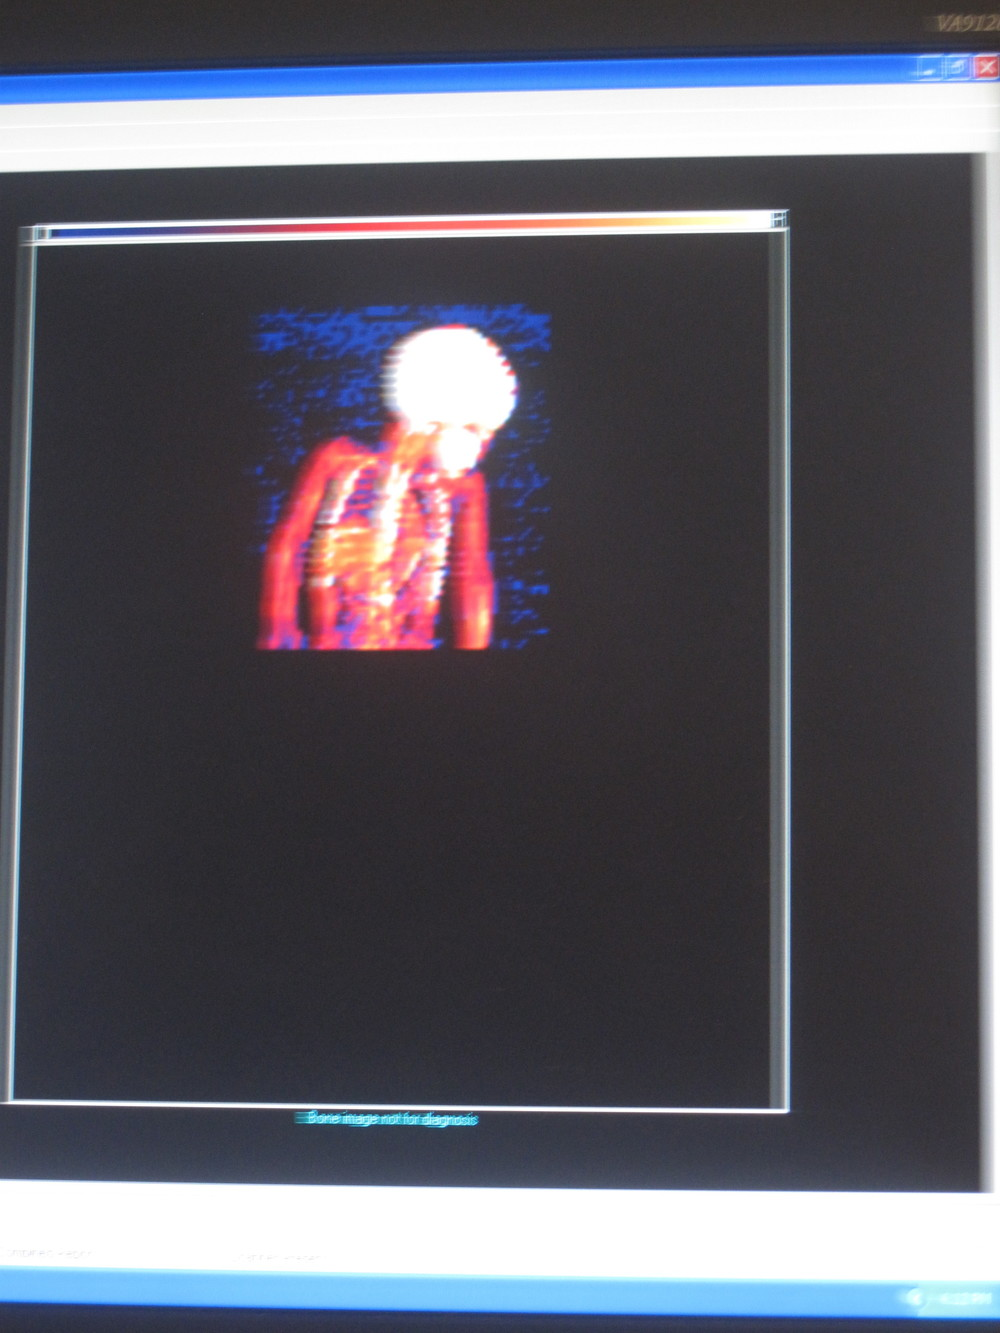 Brooke's DEXA scan in progress...